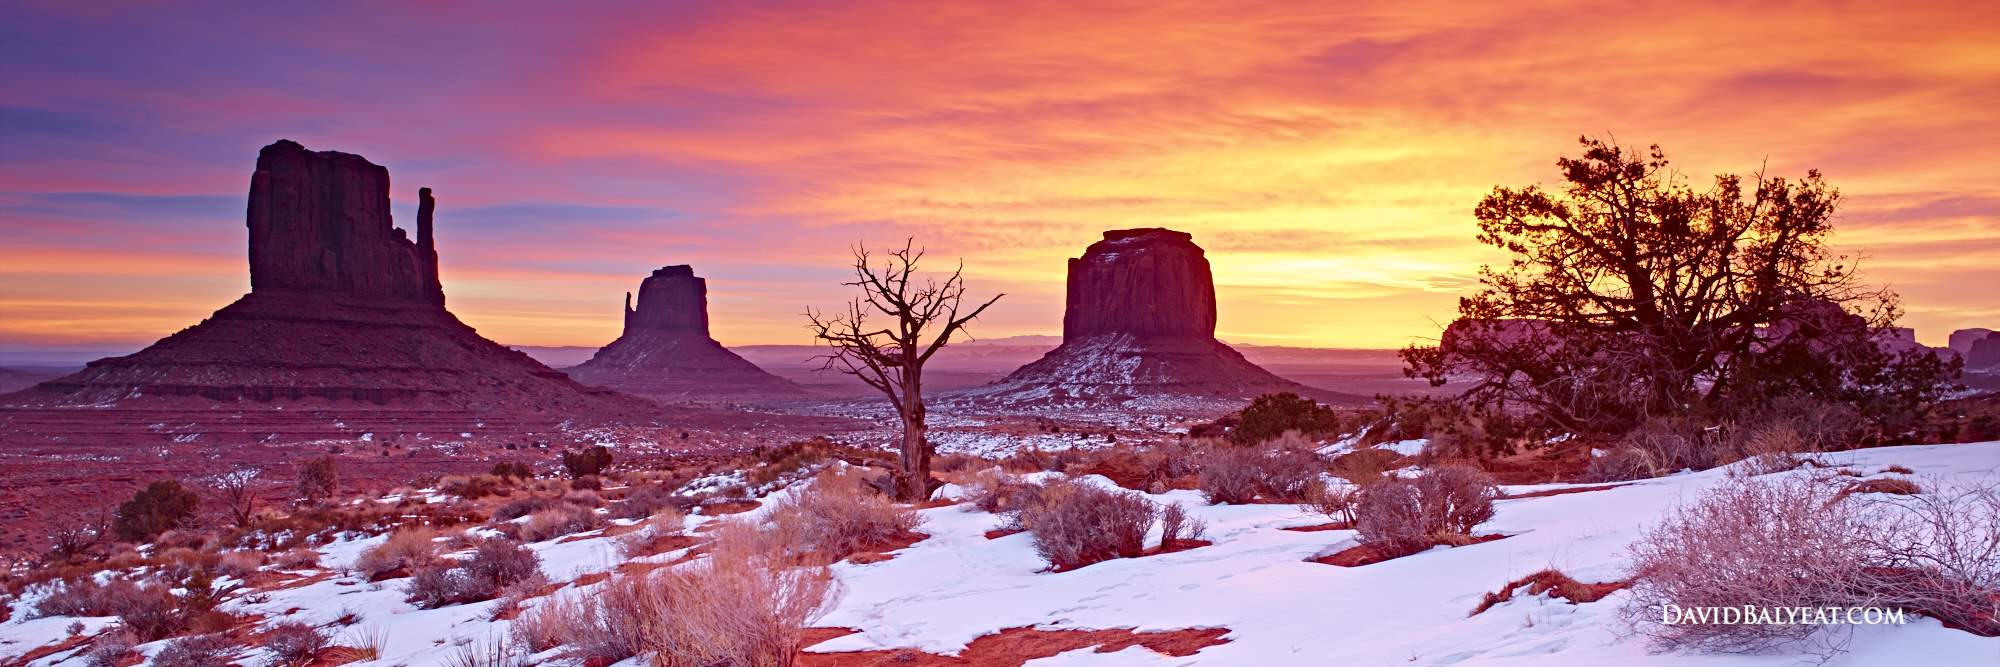 Monument Valley sunrise panoramic snow high definition HD professional landscape photography